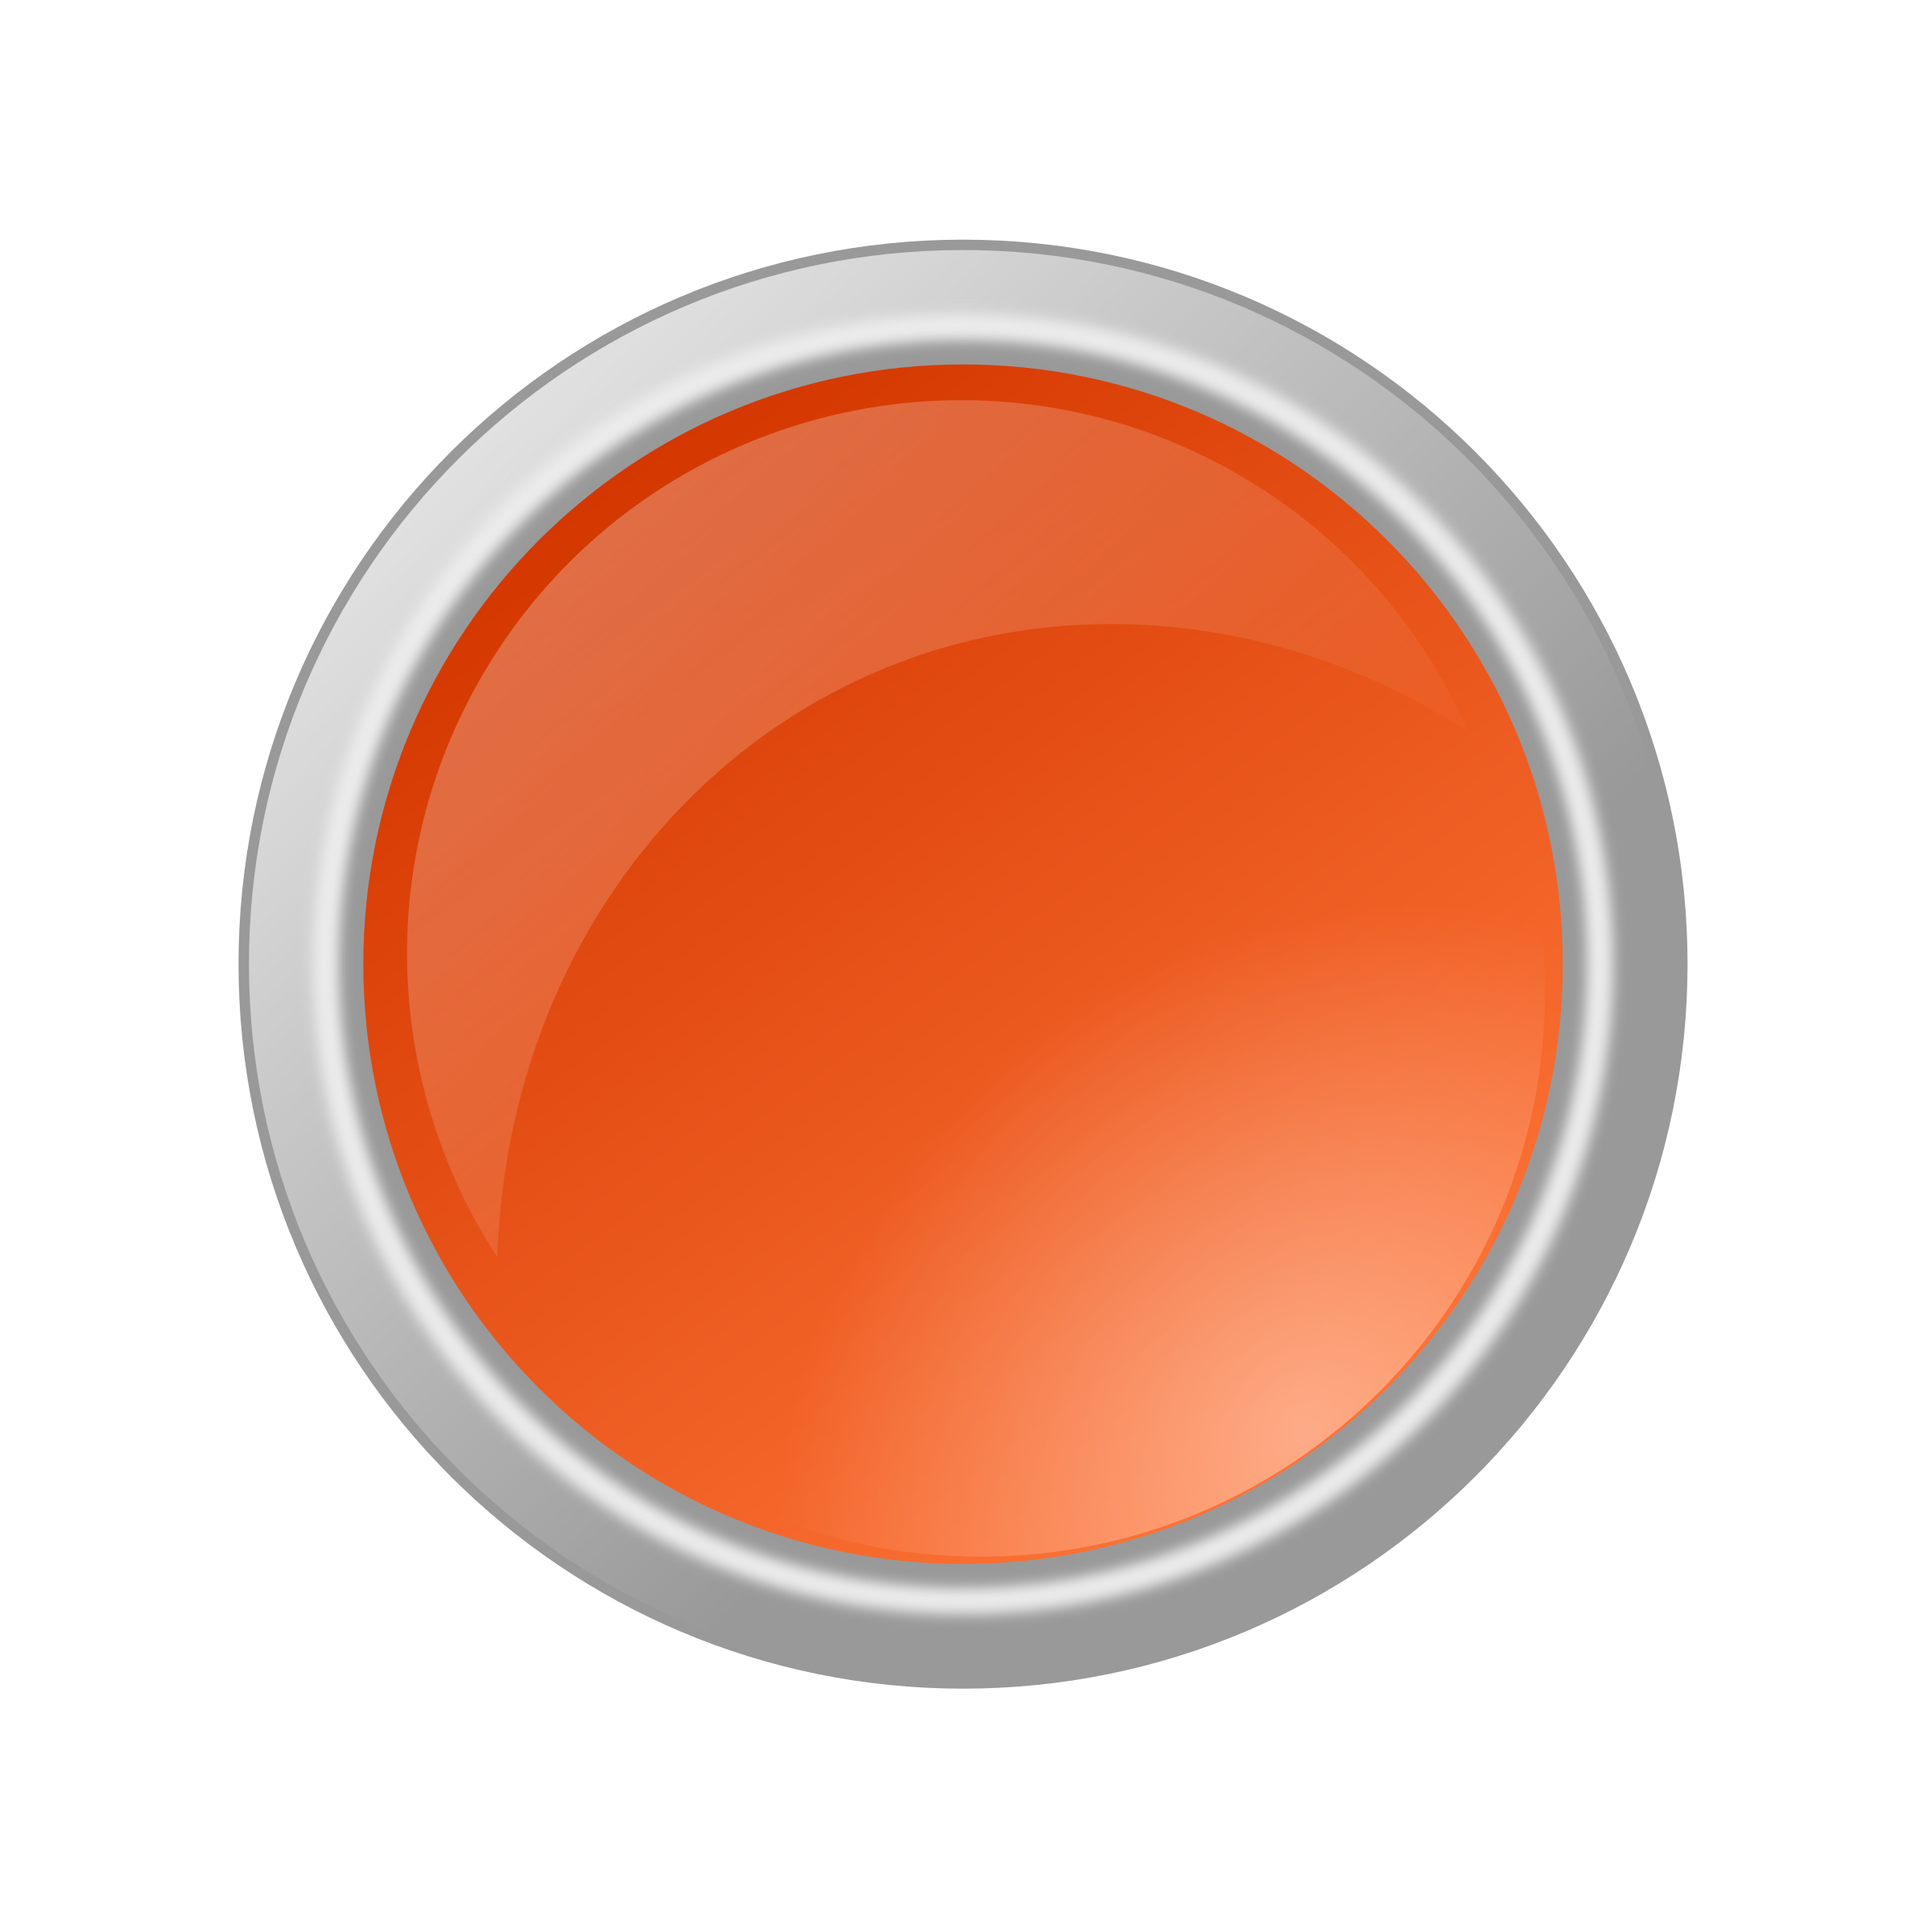 Orange button png. Glossy icons free and